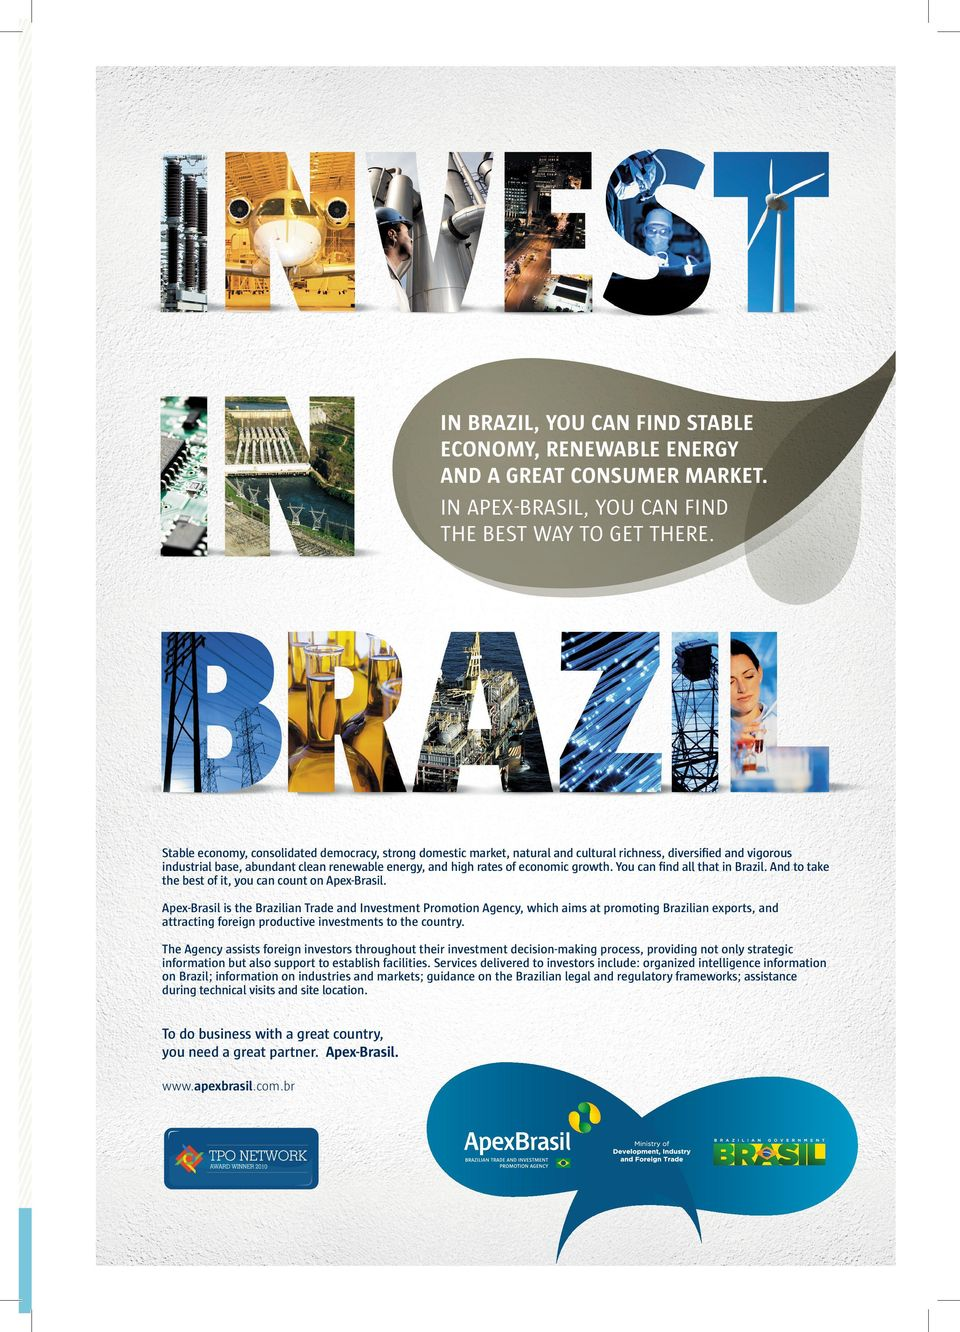 growth. You can find all that in Brazil. And to take the best of it, you can count on Apex-Brasil.